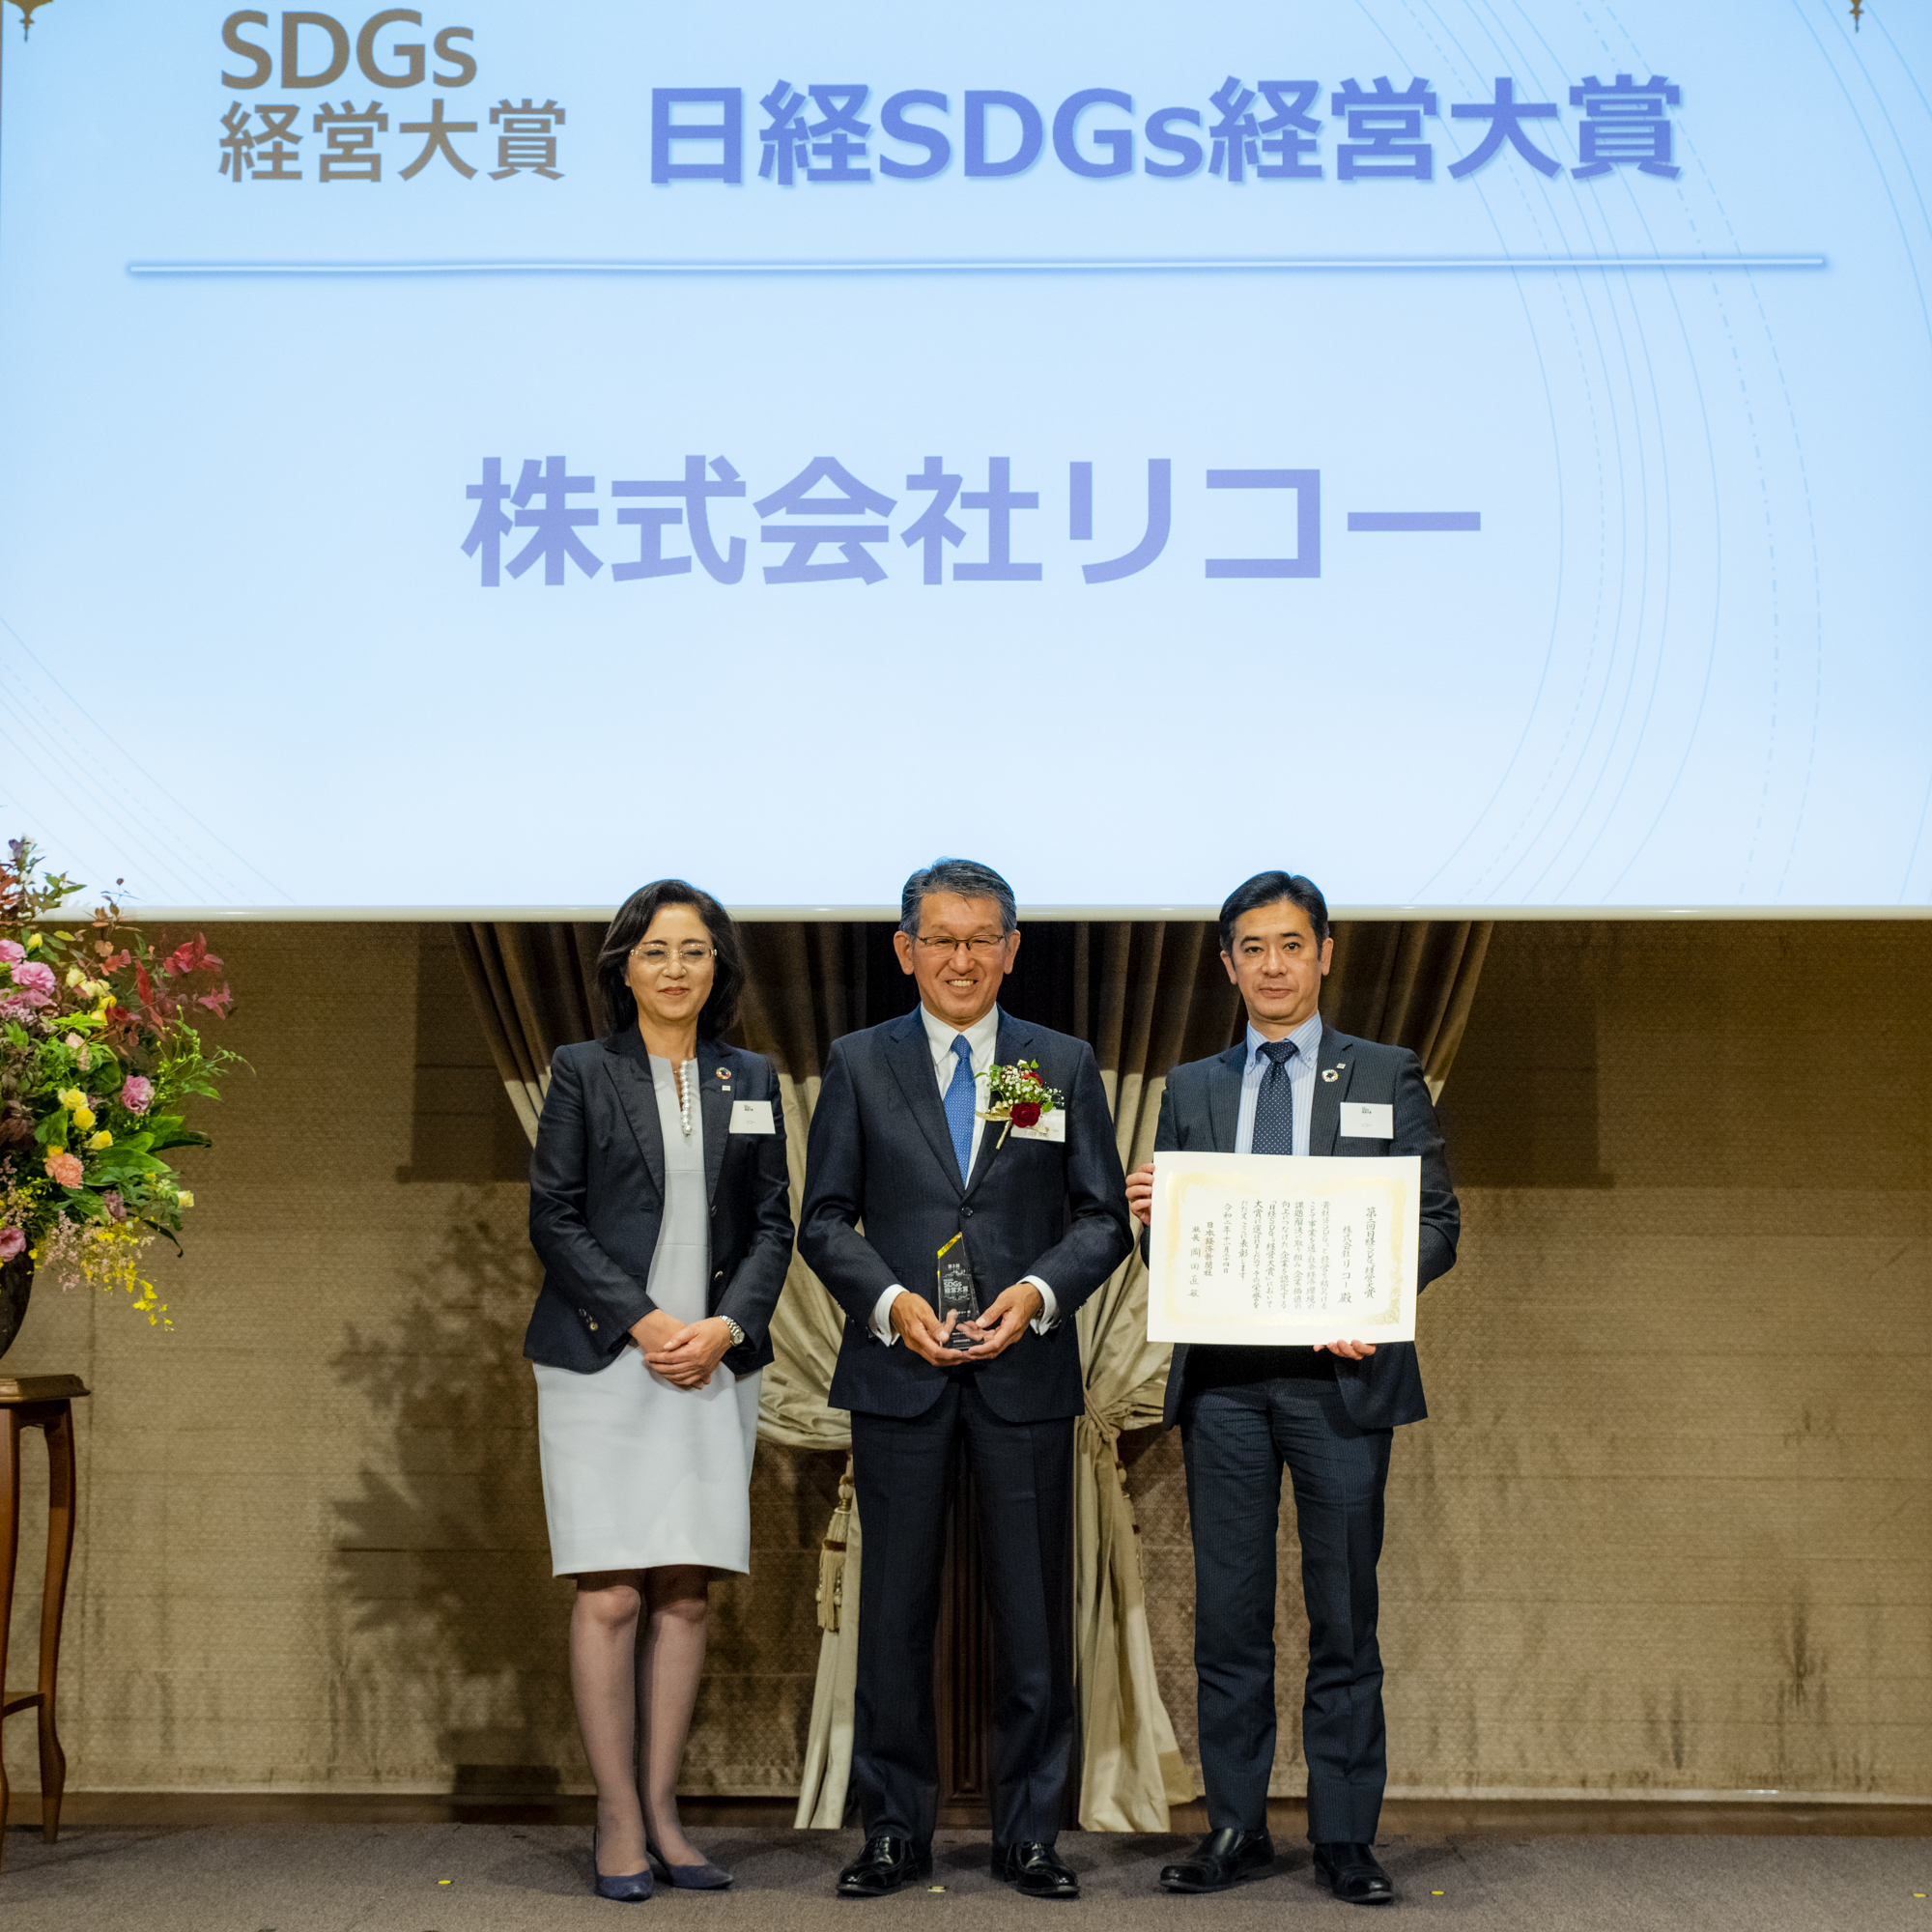 Ricoh wins the Grand Prix award at the Nikkei SDGs Management Grand Prix